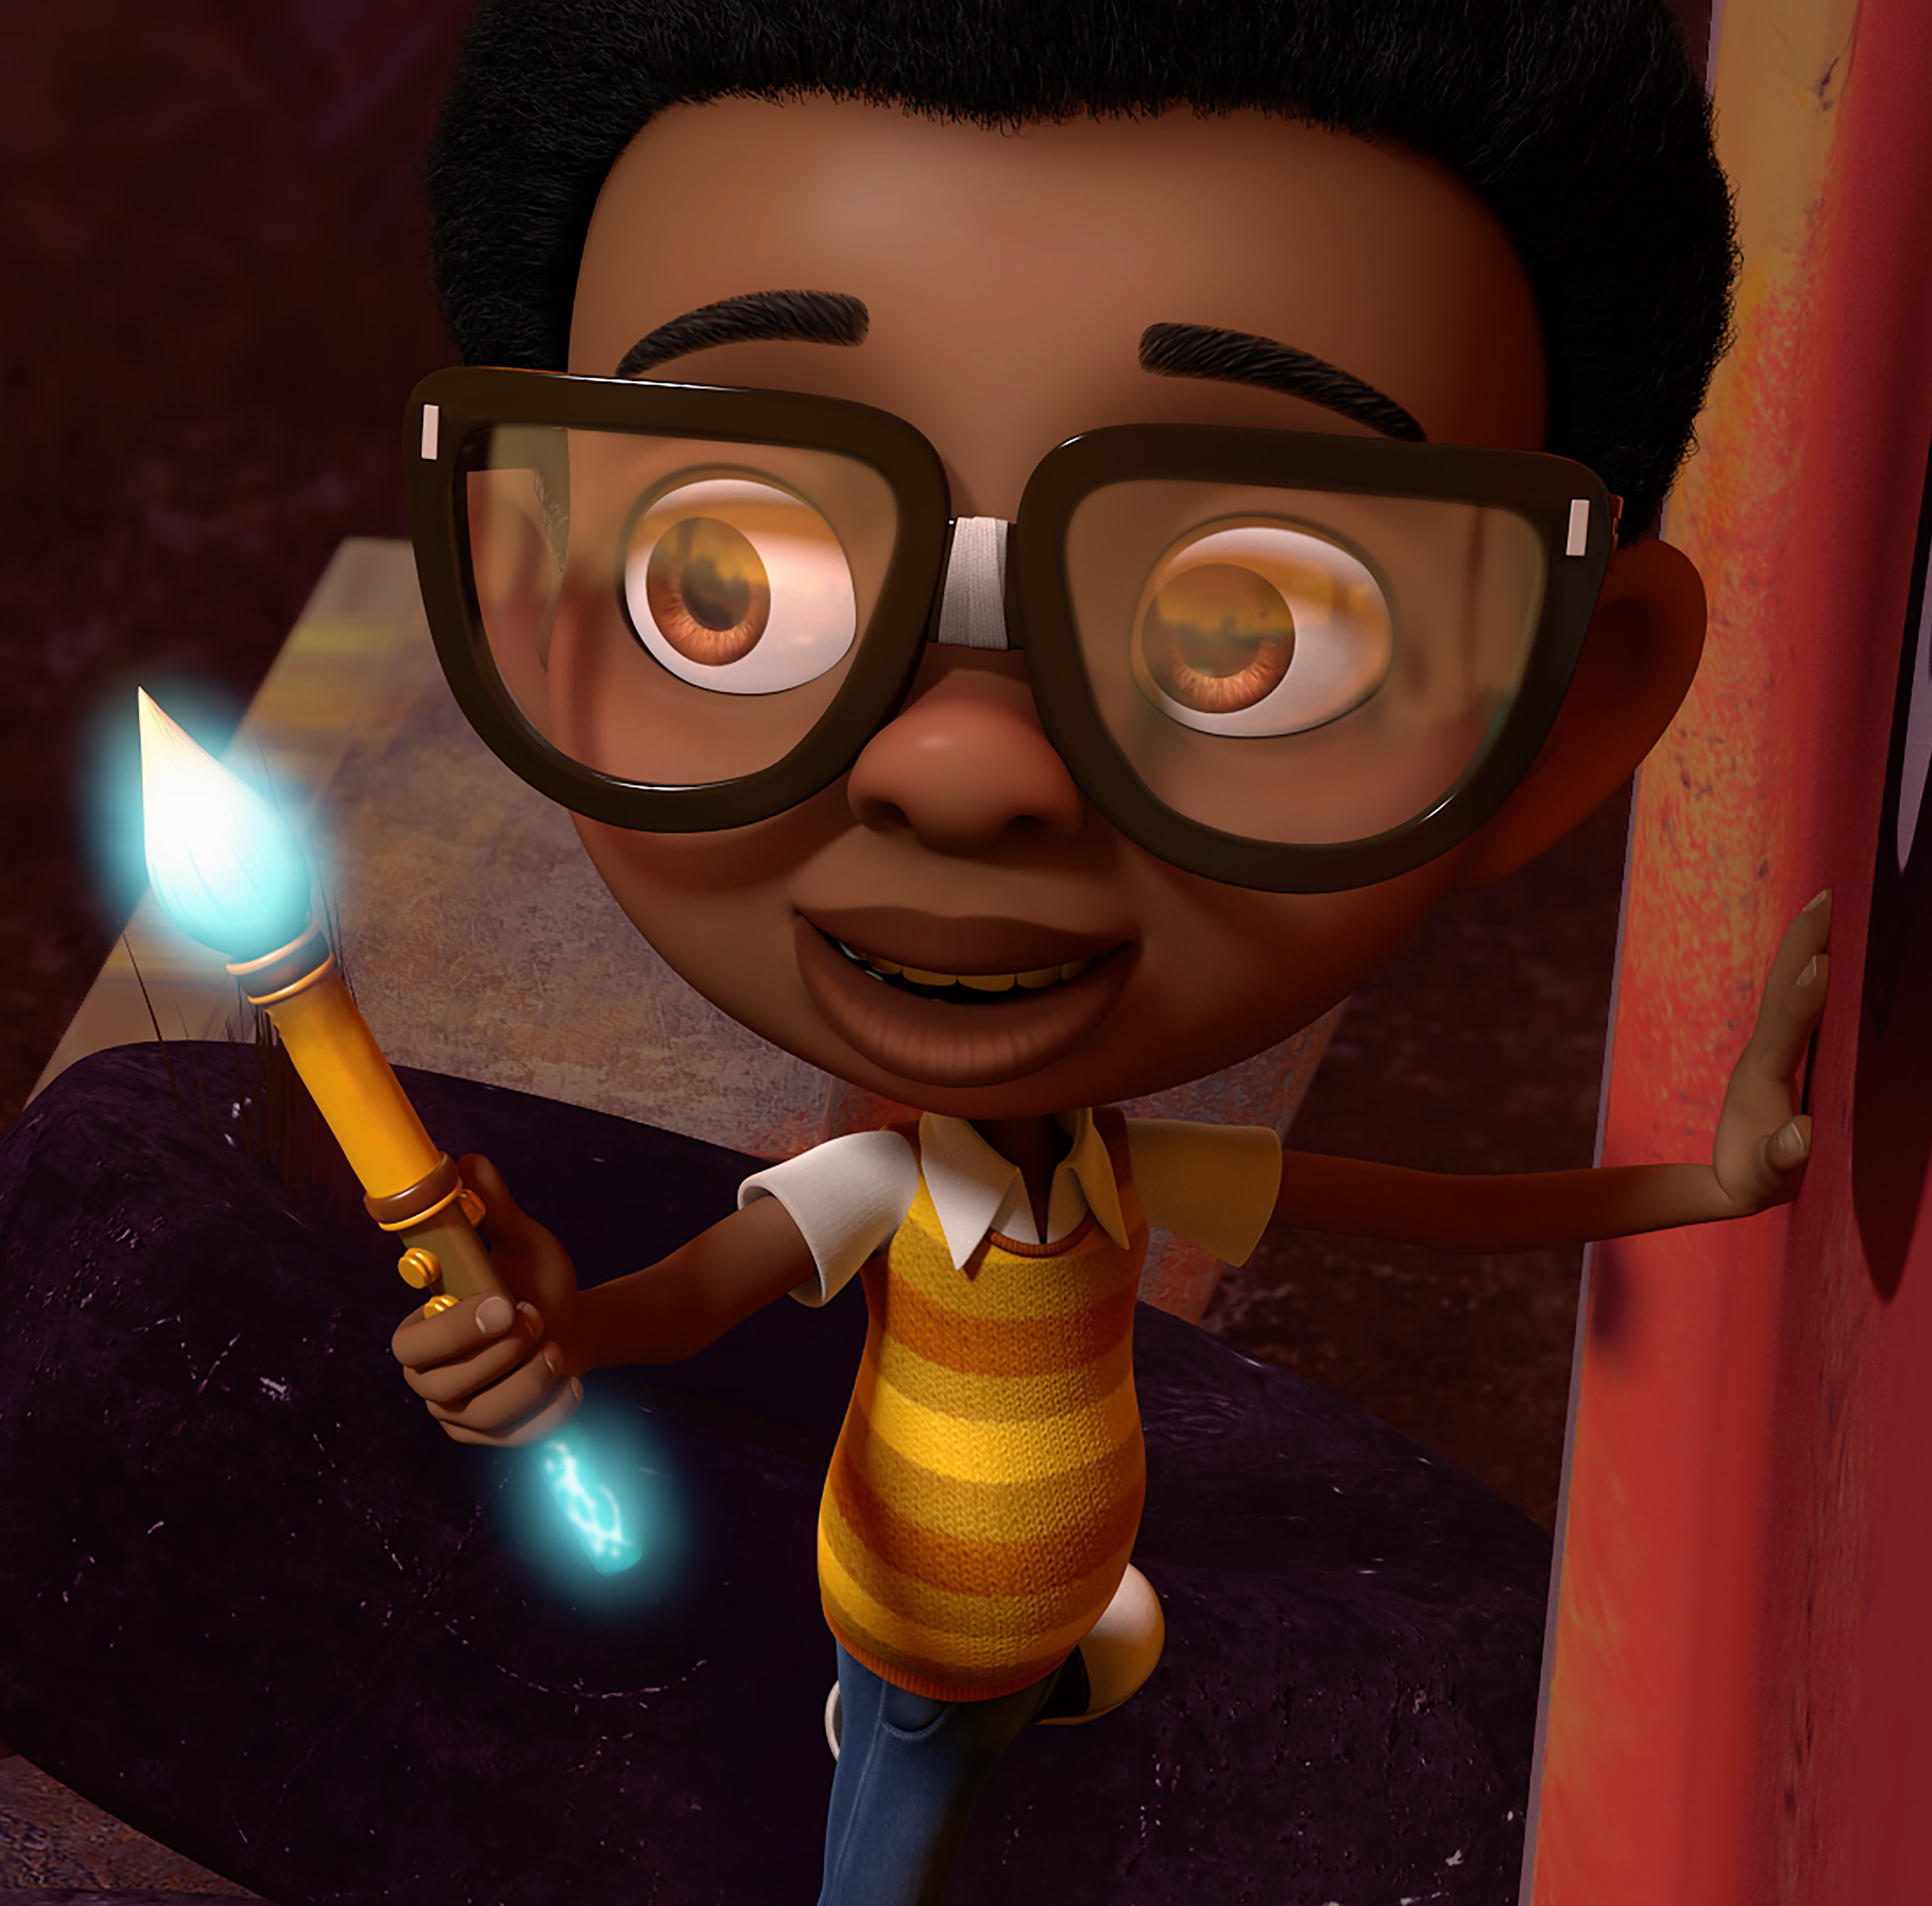 Ben is a wide-eyed, imaginative 8-year-old at the center of 'Motown Magic,' a new Netflix animated family series that features newly recorded versions of classic Motown hits.